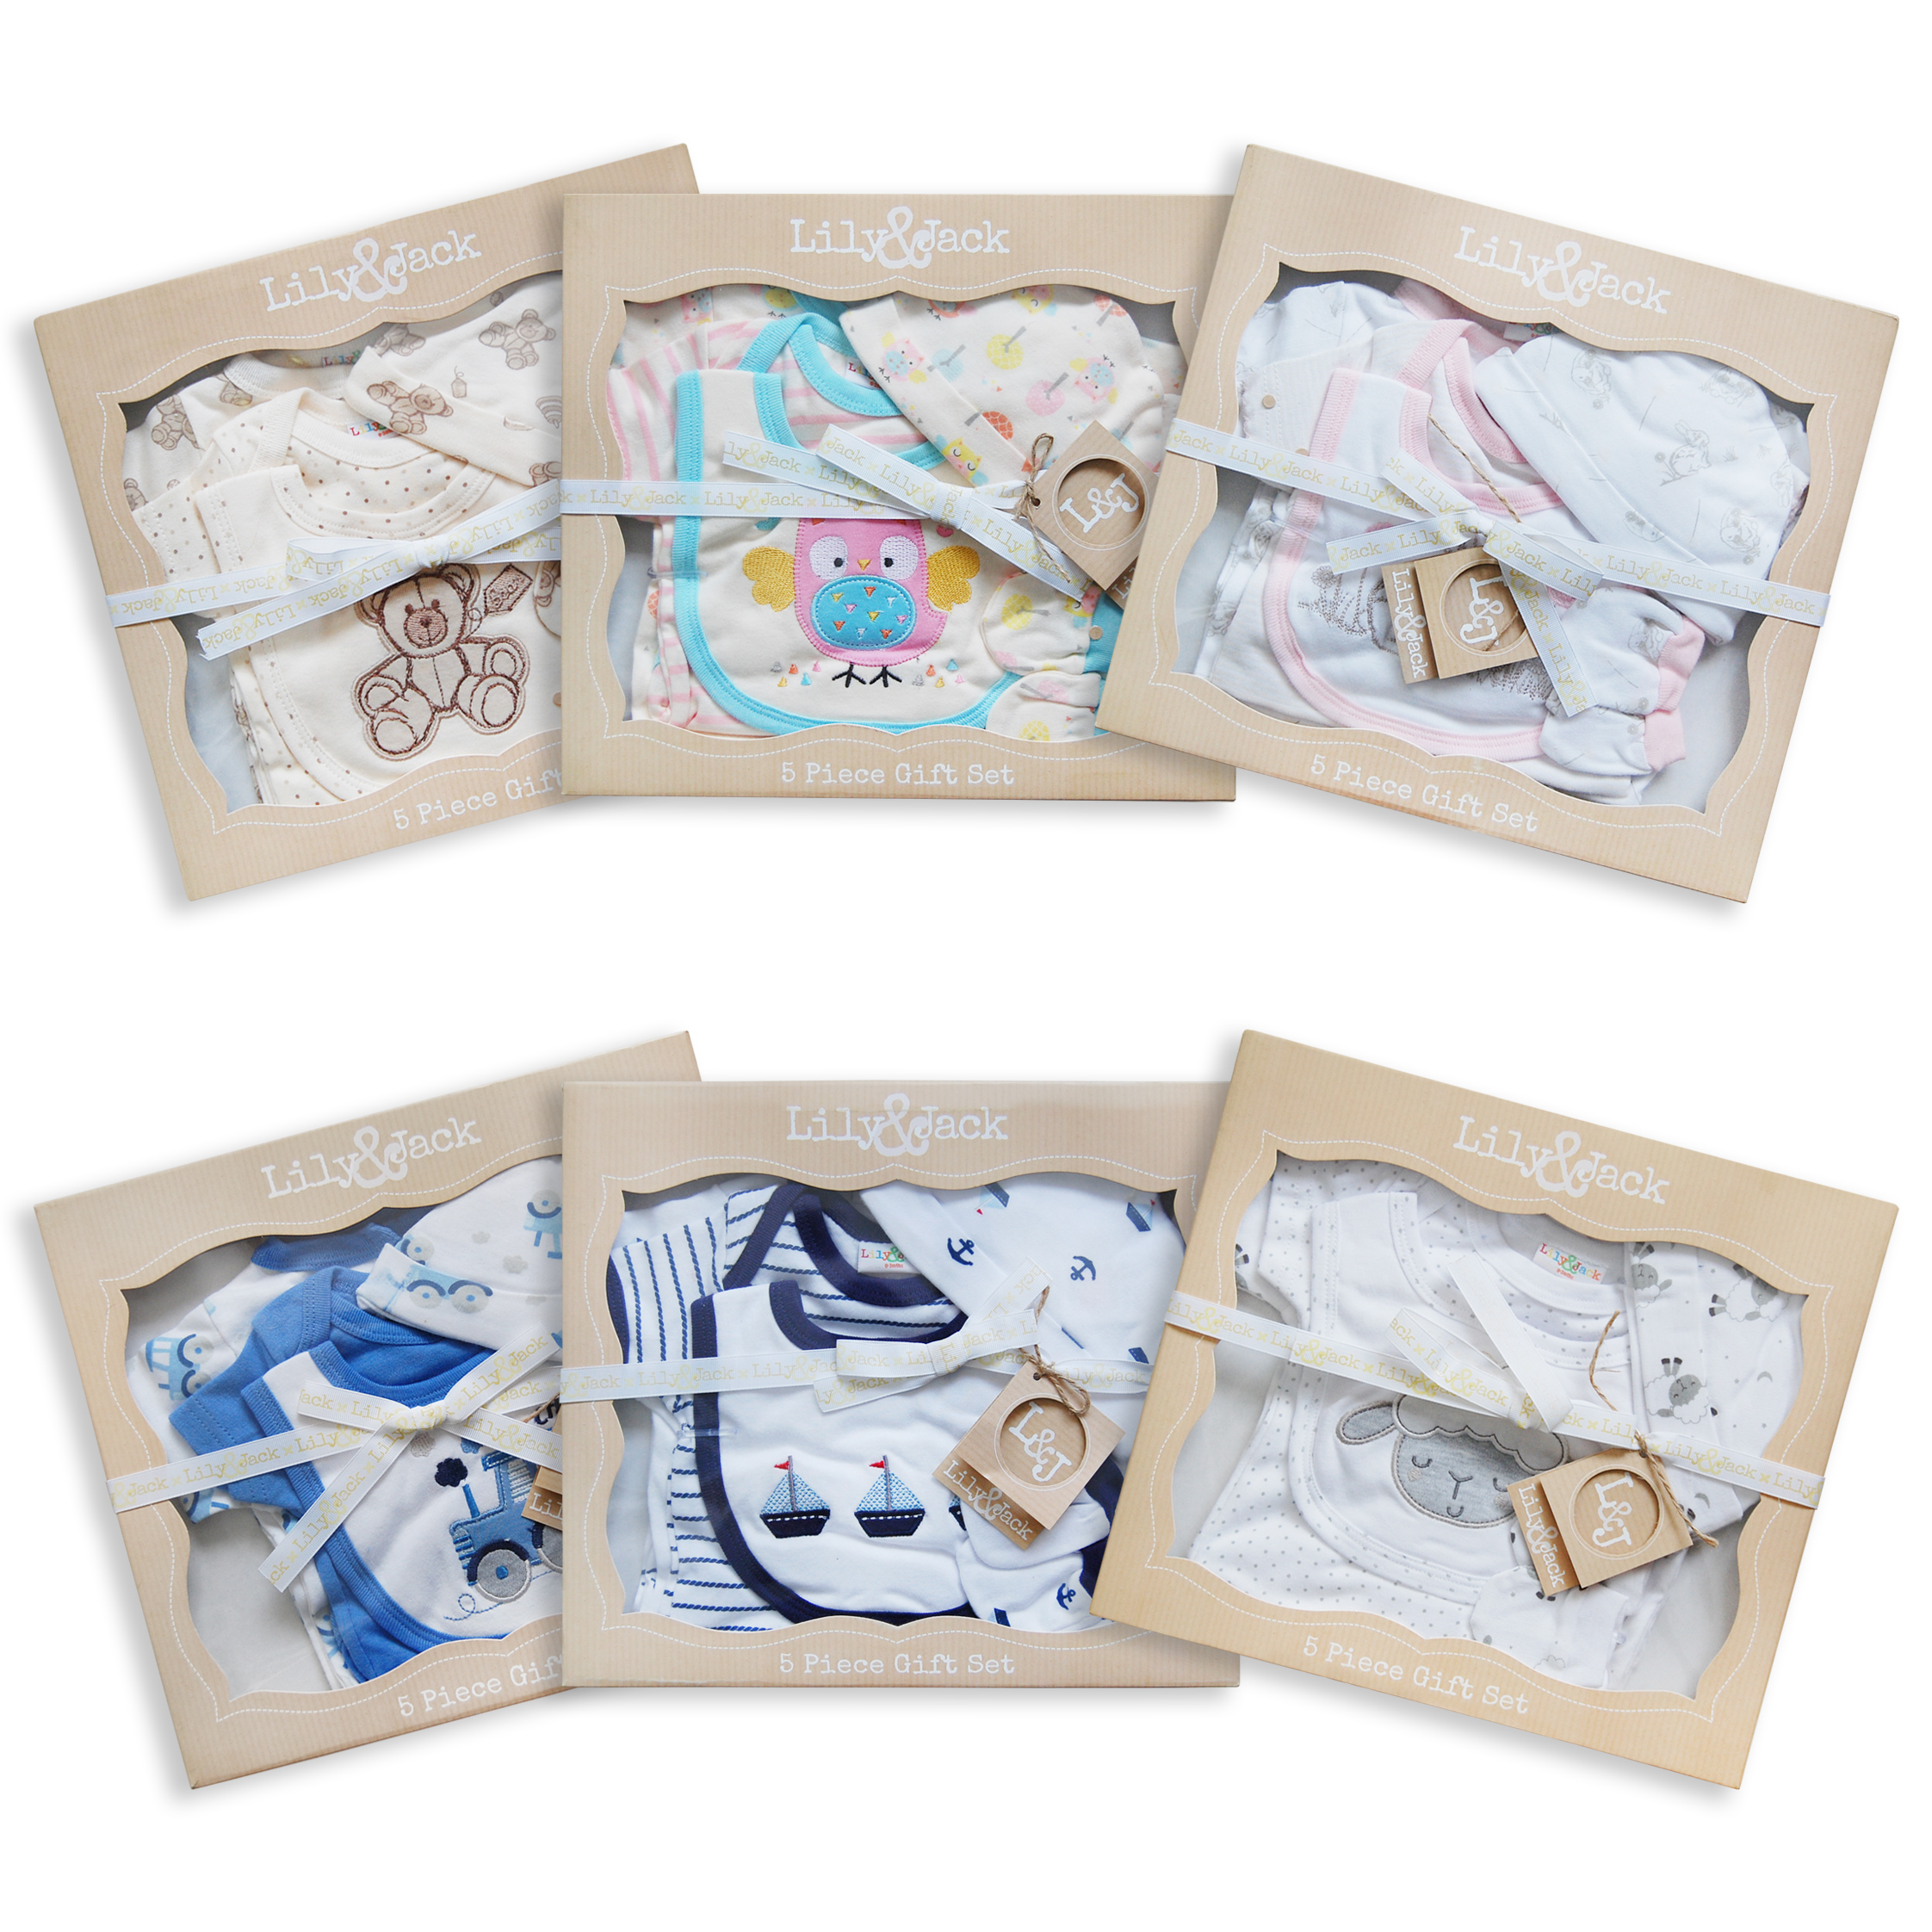 Luxury New Baby Gifts Uk : Luxury newborn baby layette piece designer gift set box